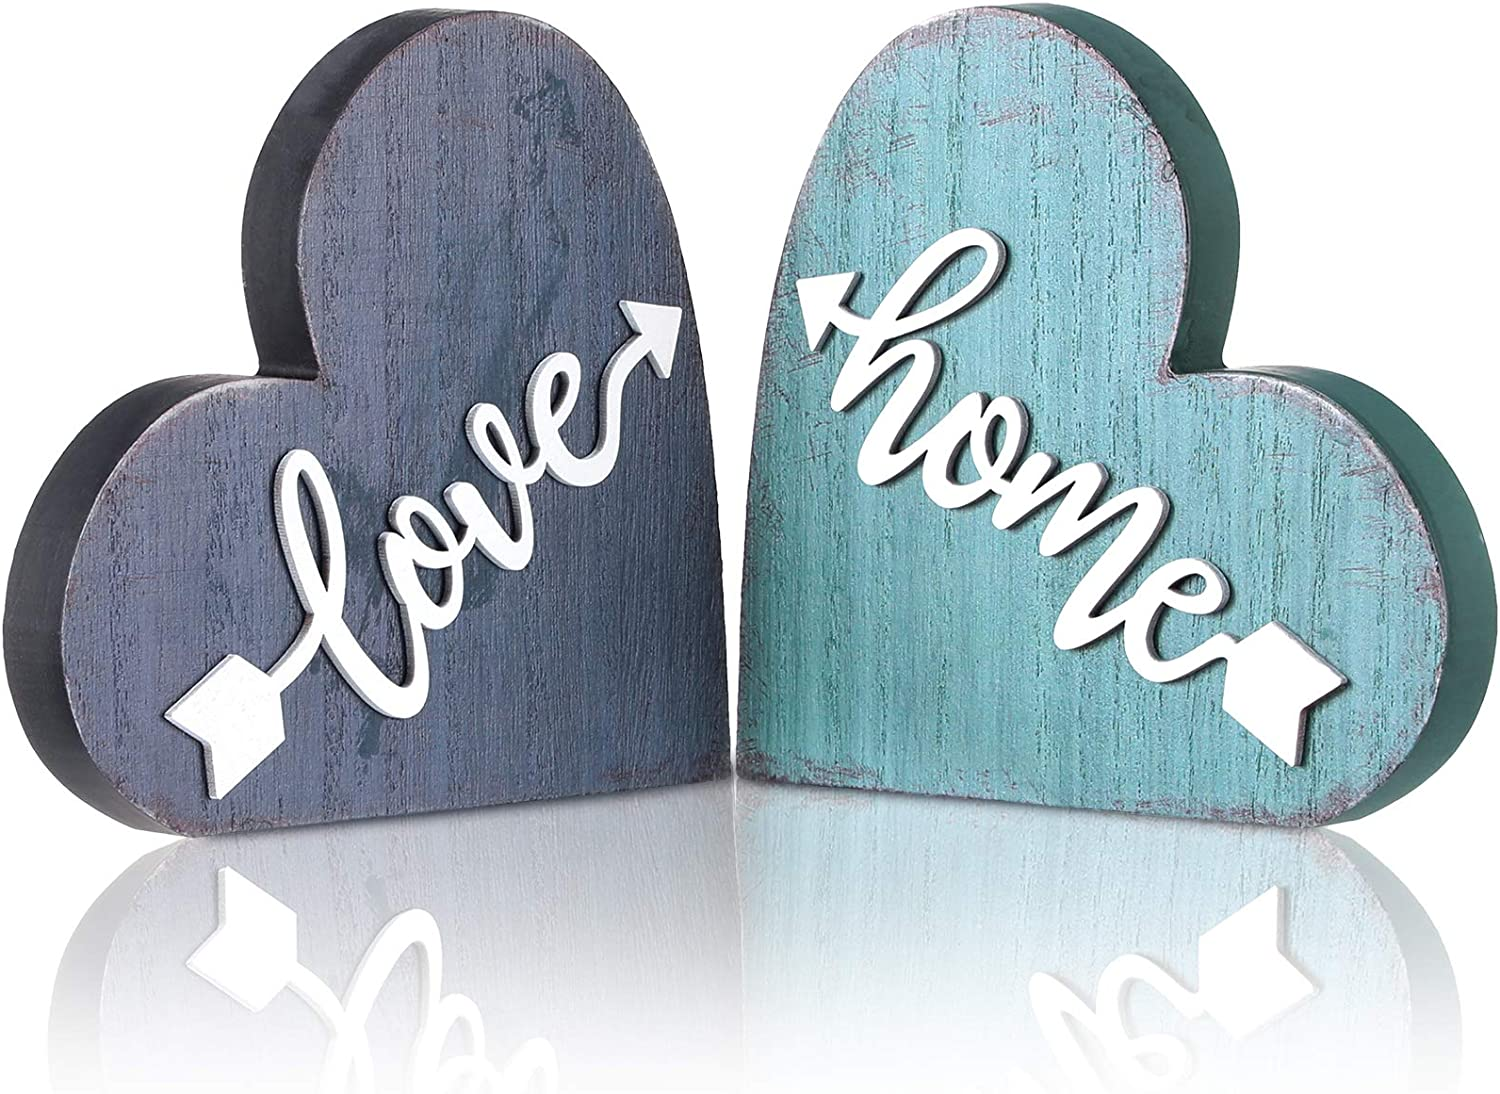 Jetec 2 Pieces Wood Home Sign Heart Wooden Signs Rustic Wood Love Sign Decorative Love Heart Wooden Sign for Holiday Home Table Fireplace Mantel Decor